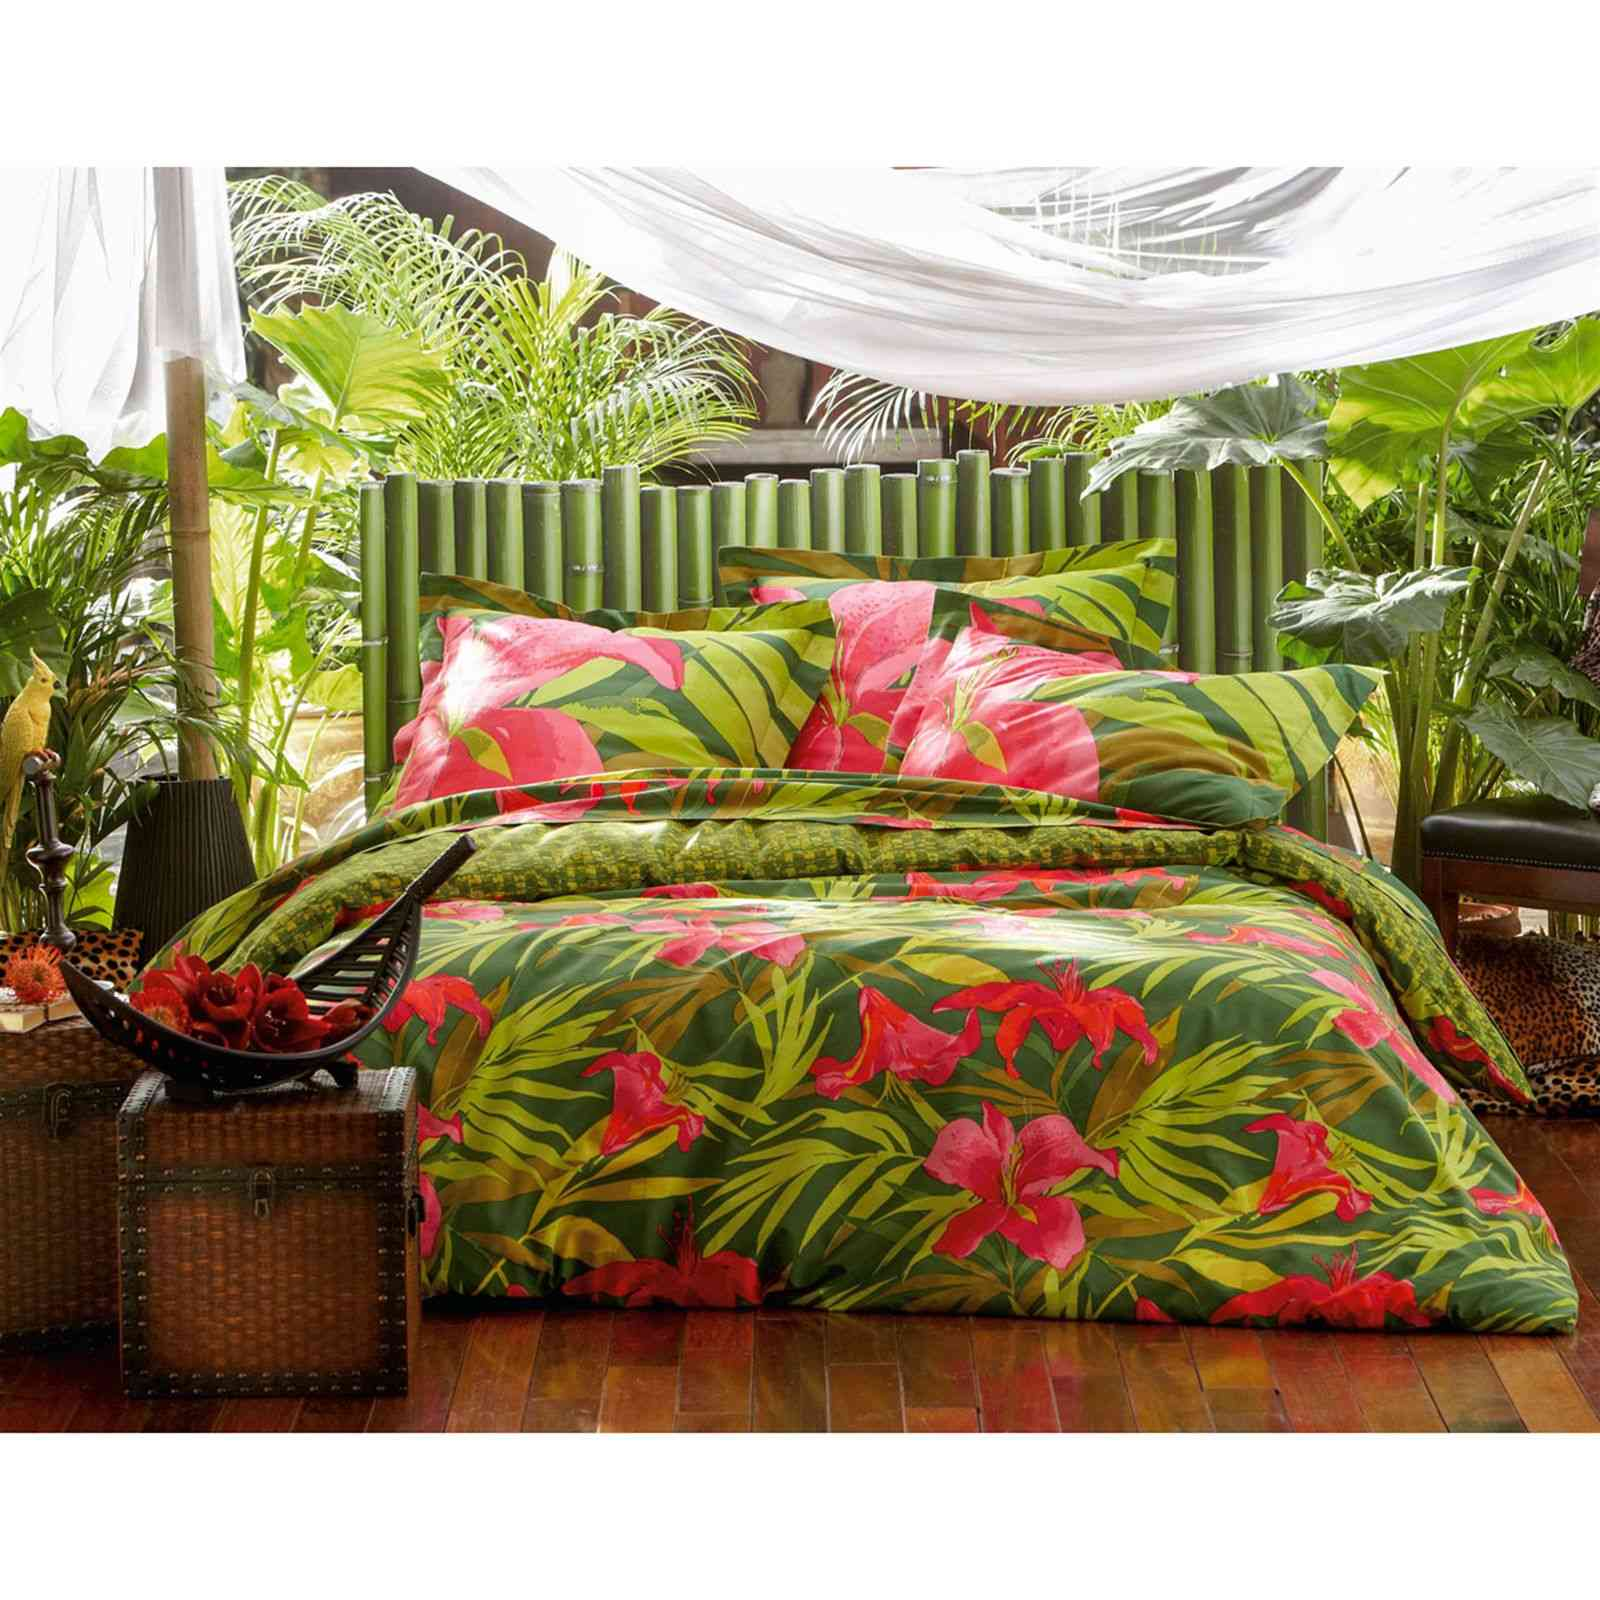 becquet housse de couette verte fleurs d 39 hibiscus vert brandalley. Black Bedroom Furniture Sets. Home Design Ideas